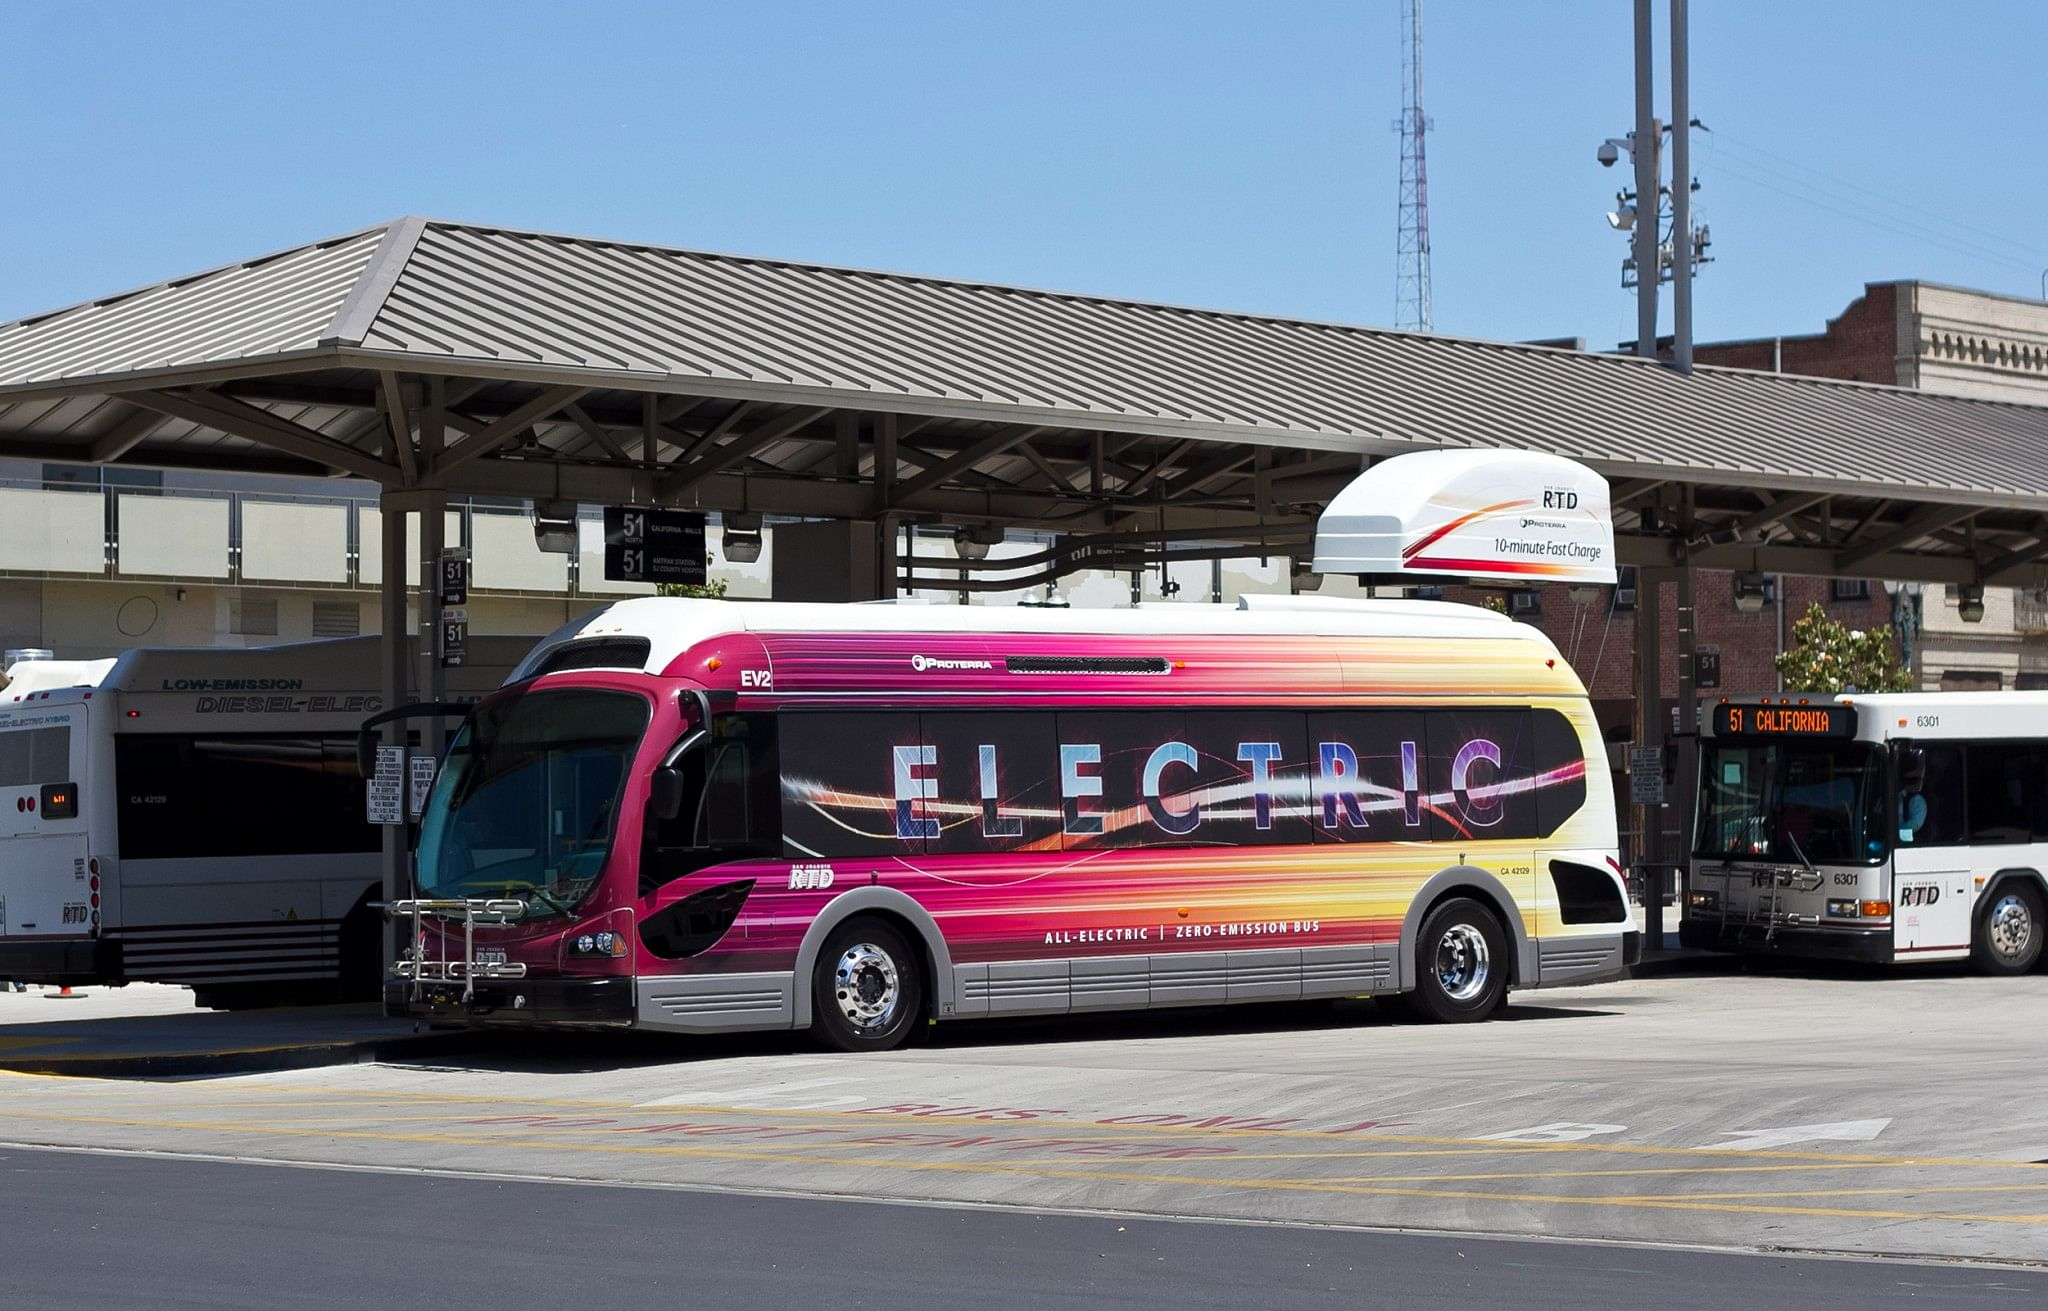 Gujarat electric buses